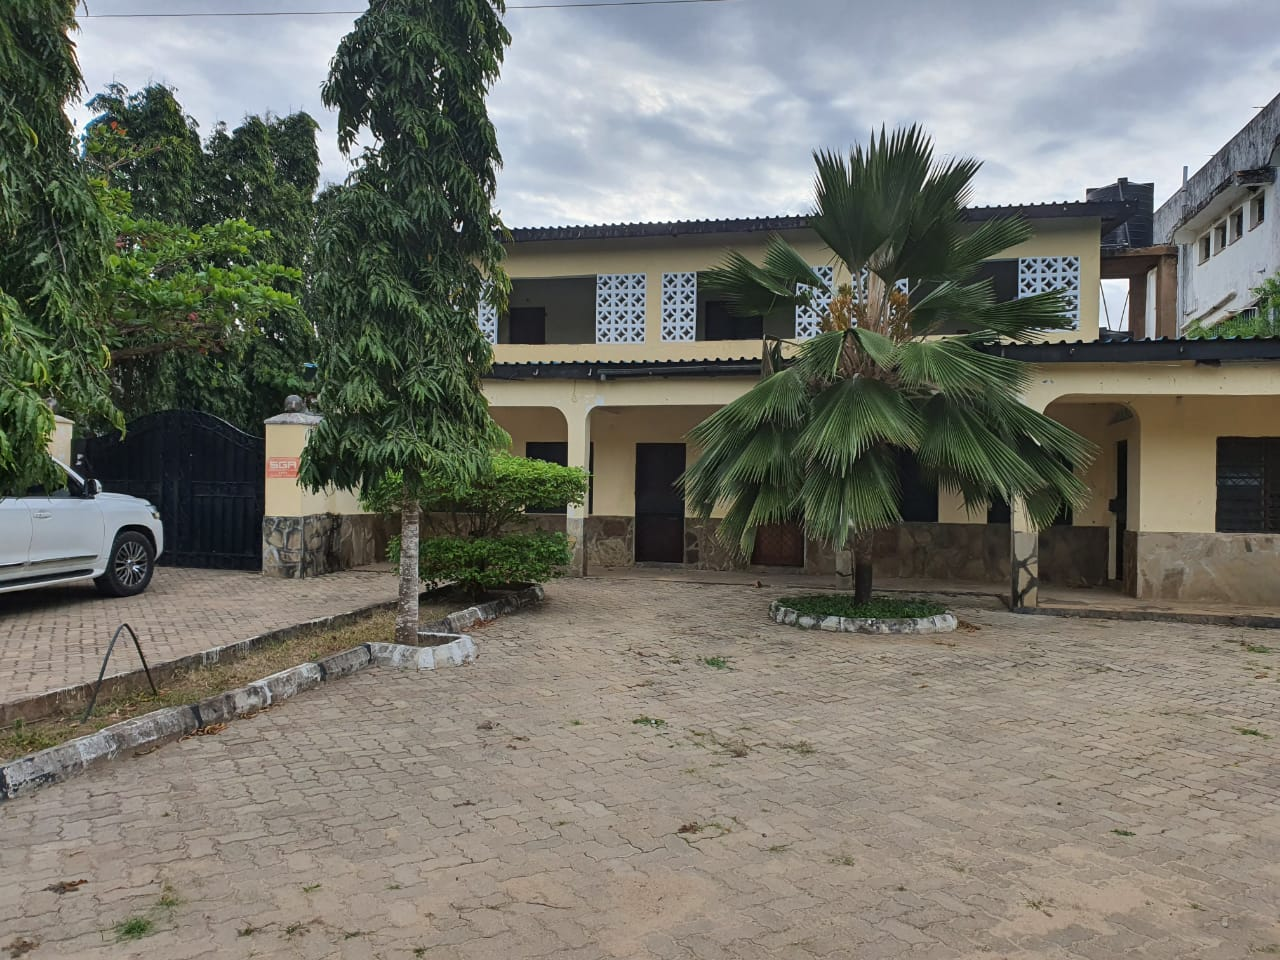 A PRIME DOUBLE STOREY RESIDENTIAL HOUSE WITH A GUEST ROOM BLOCK AND A SHOP BLOCK IN GALANA AREA, DIANI, KWALE COUNTY